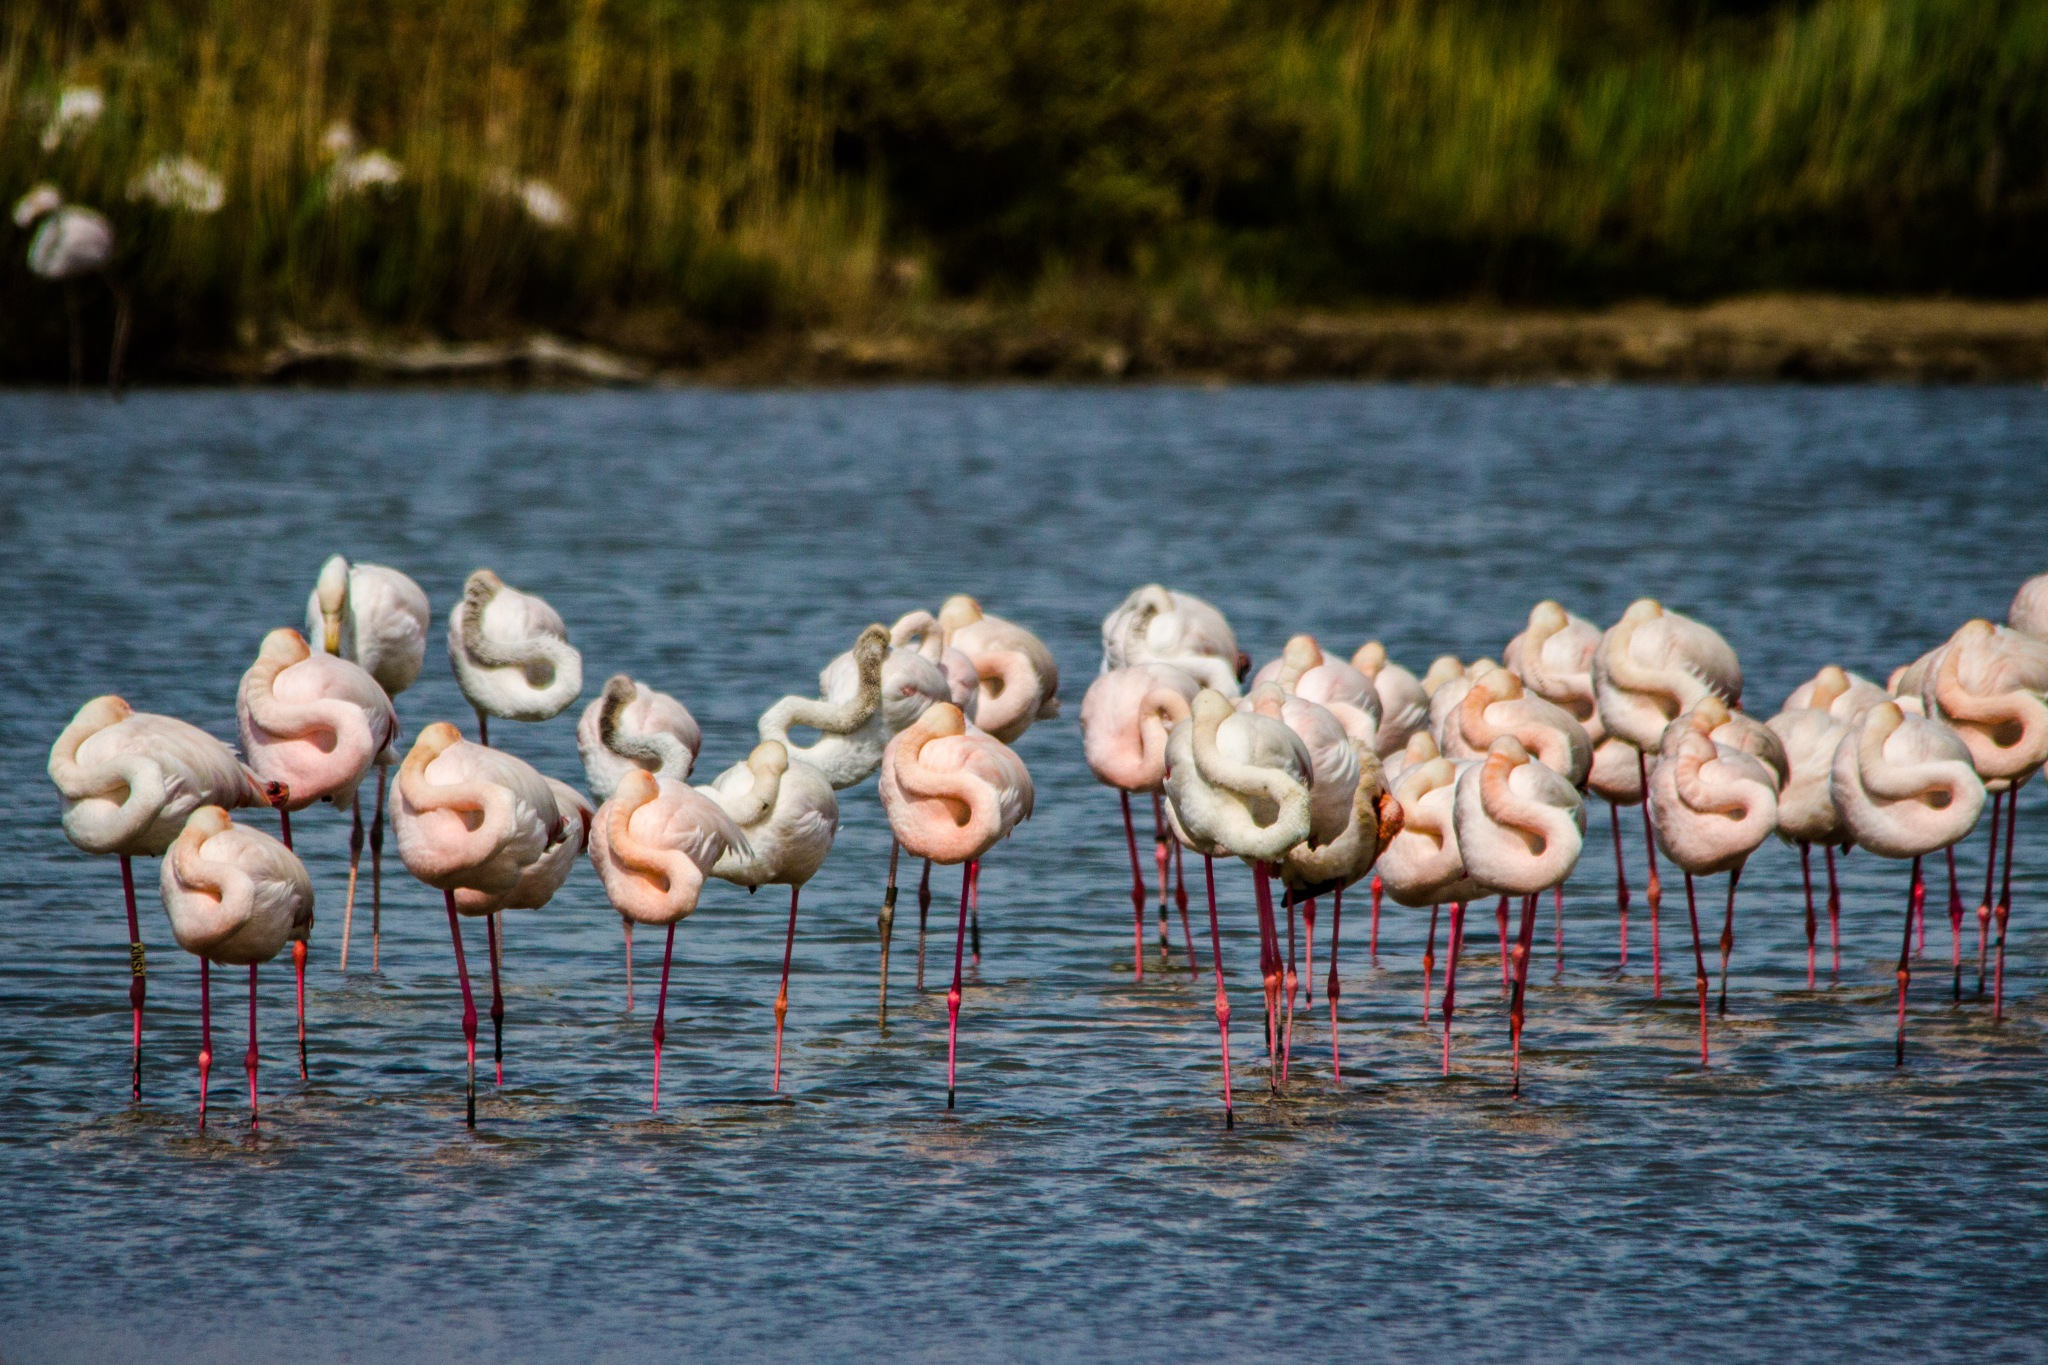 Flamingos at rest by Andrea Prestileo